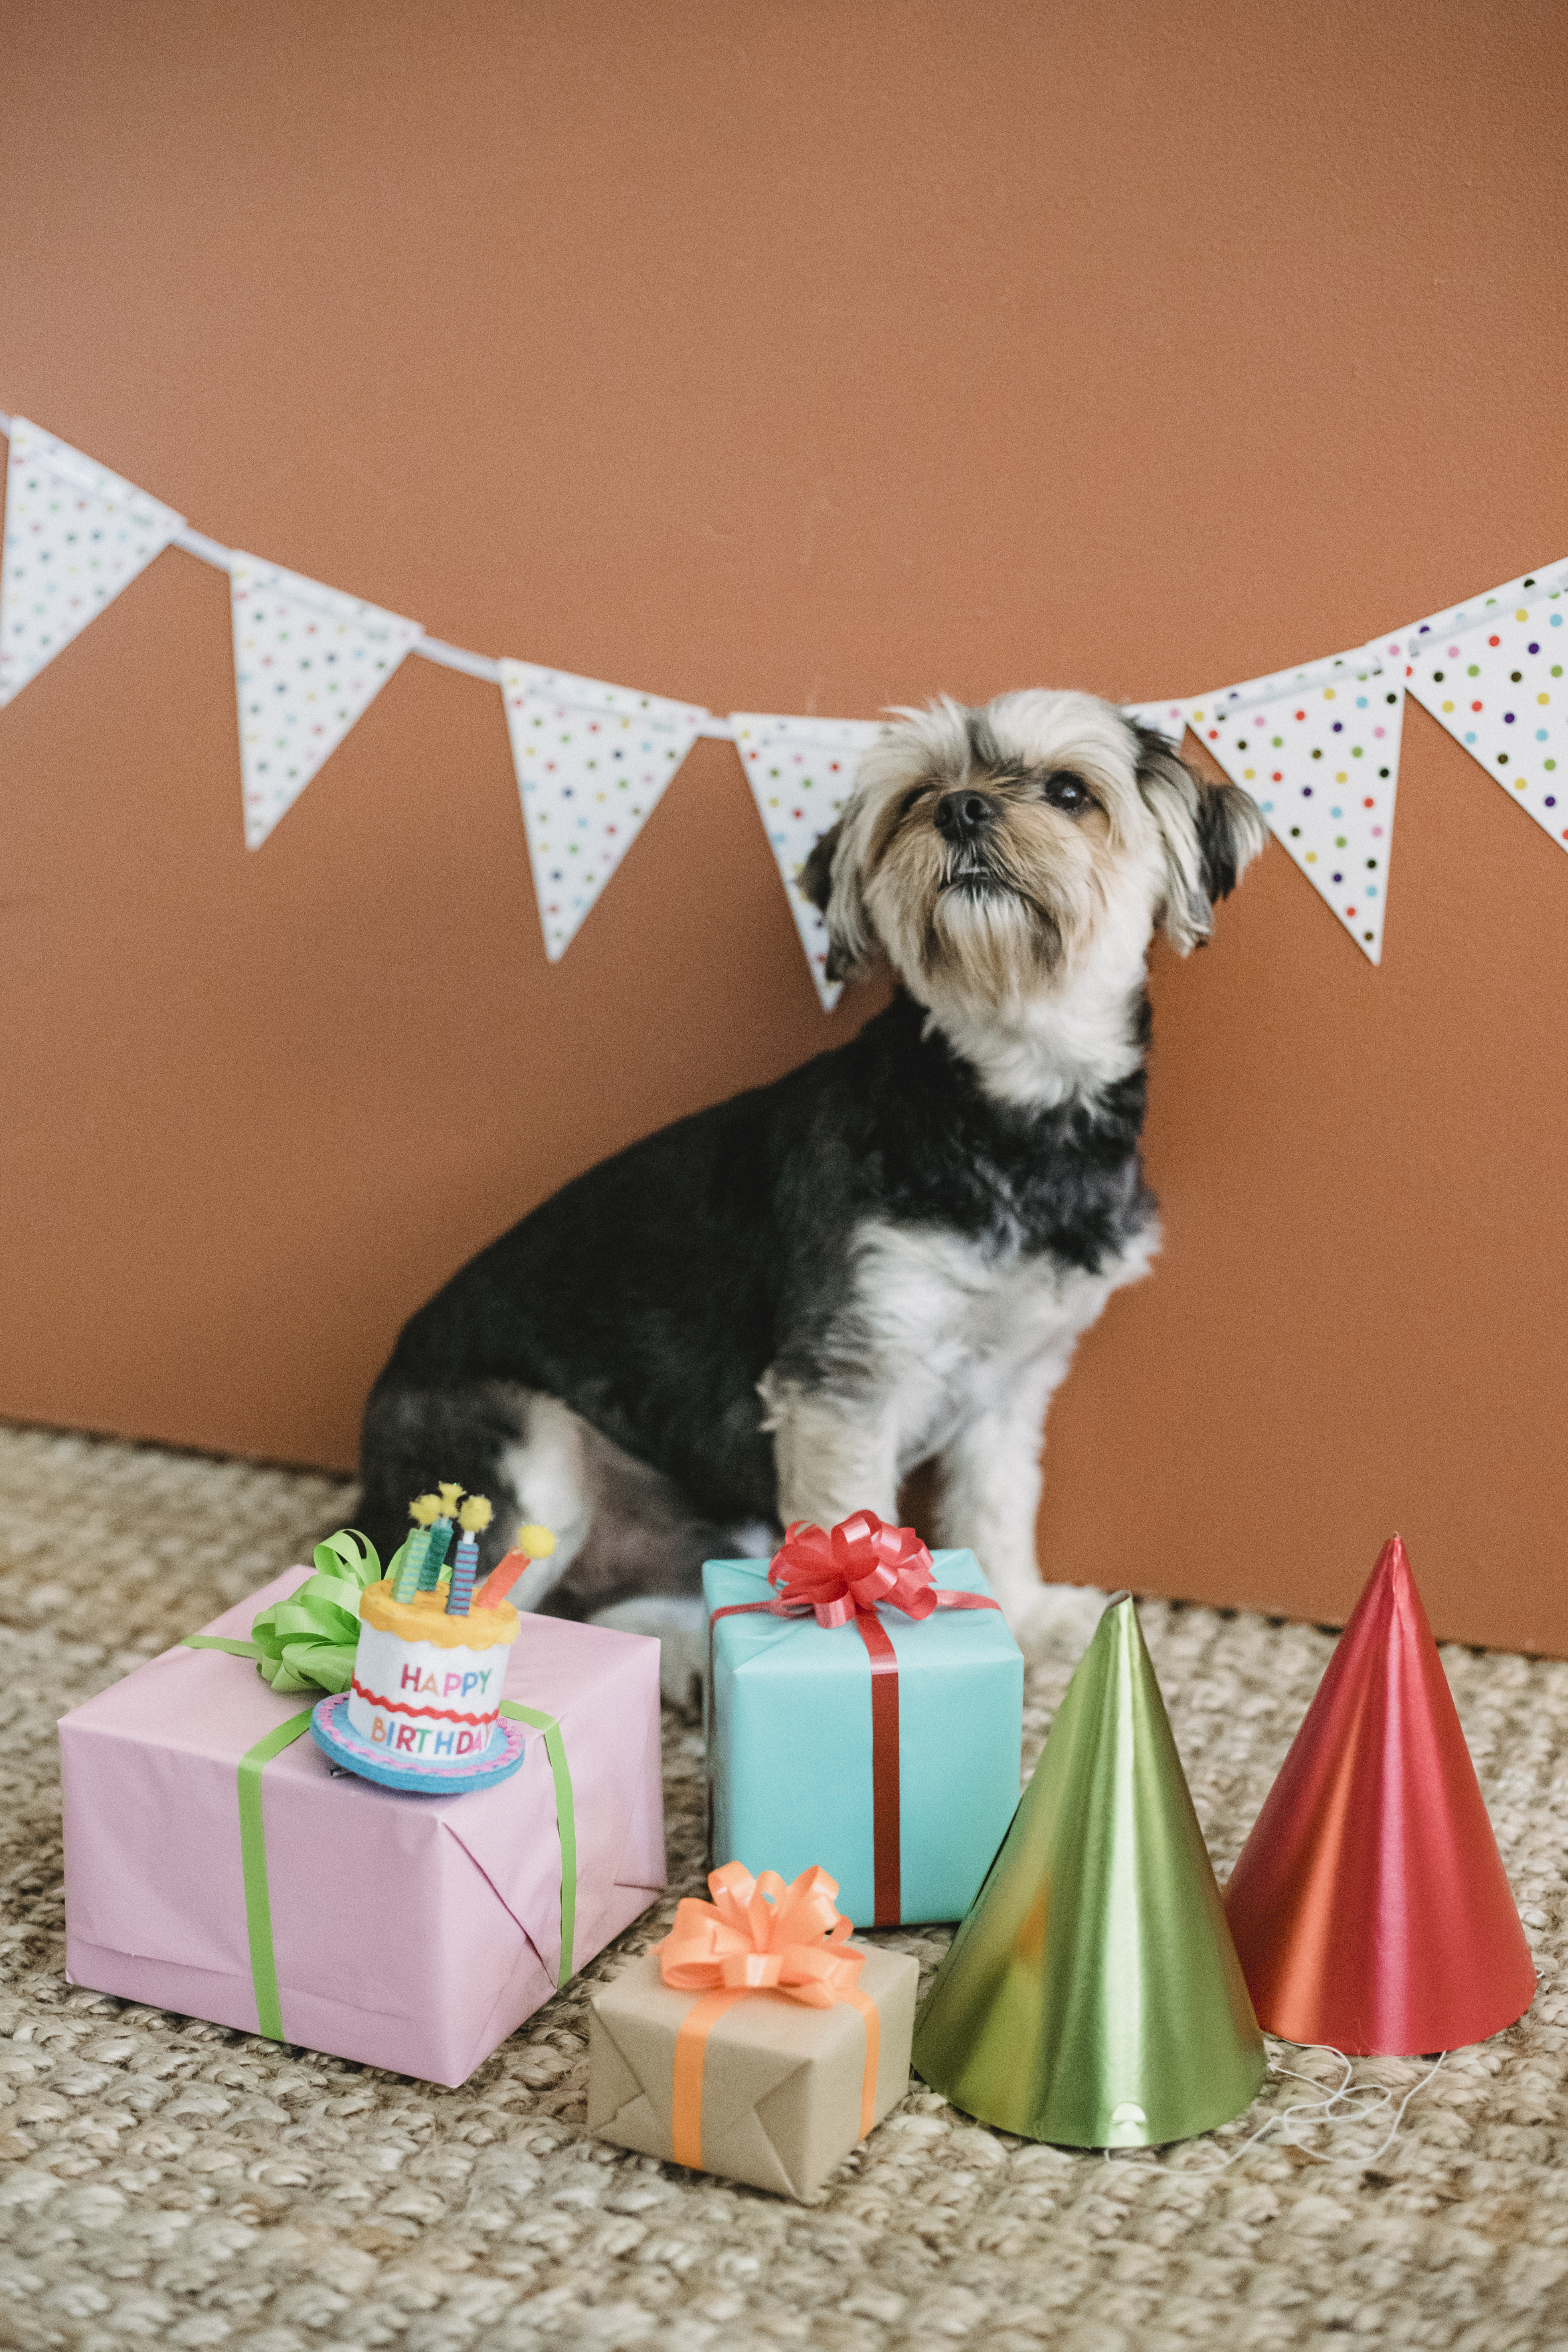 puppy sitting among gift boxes for birthday